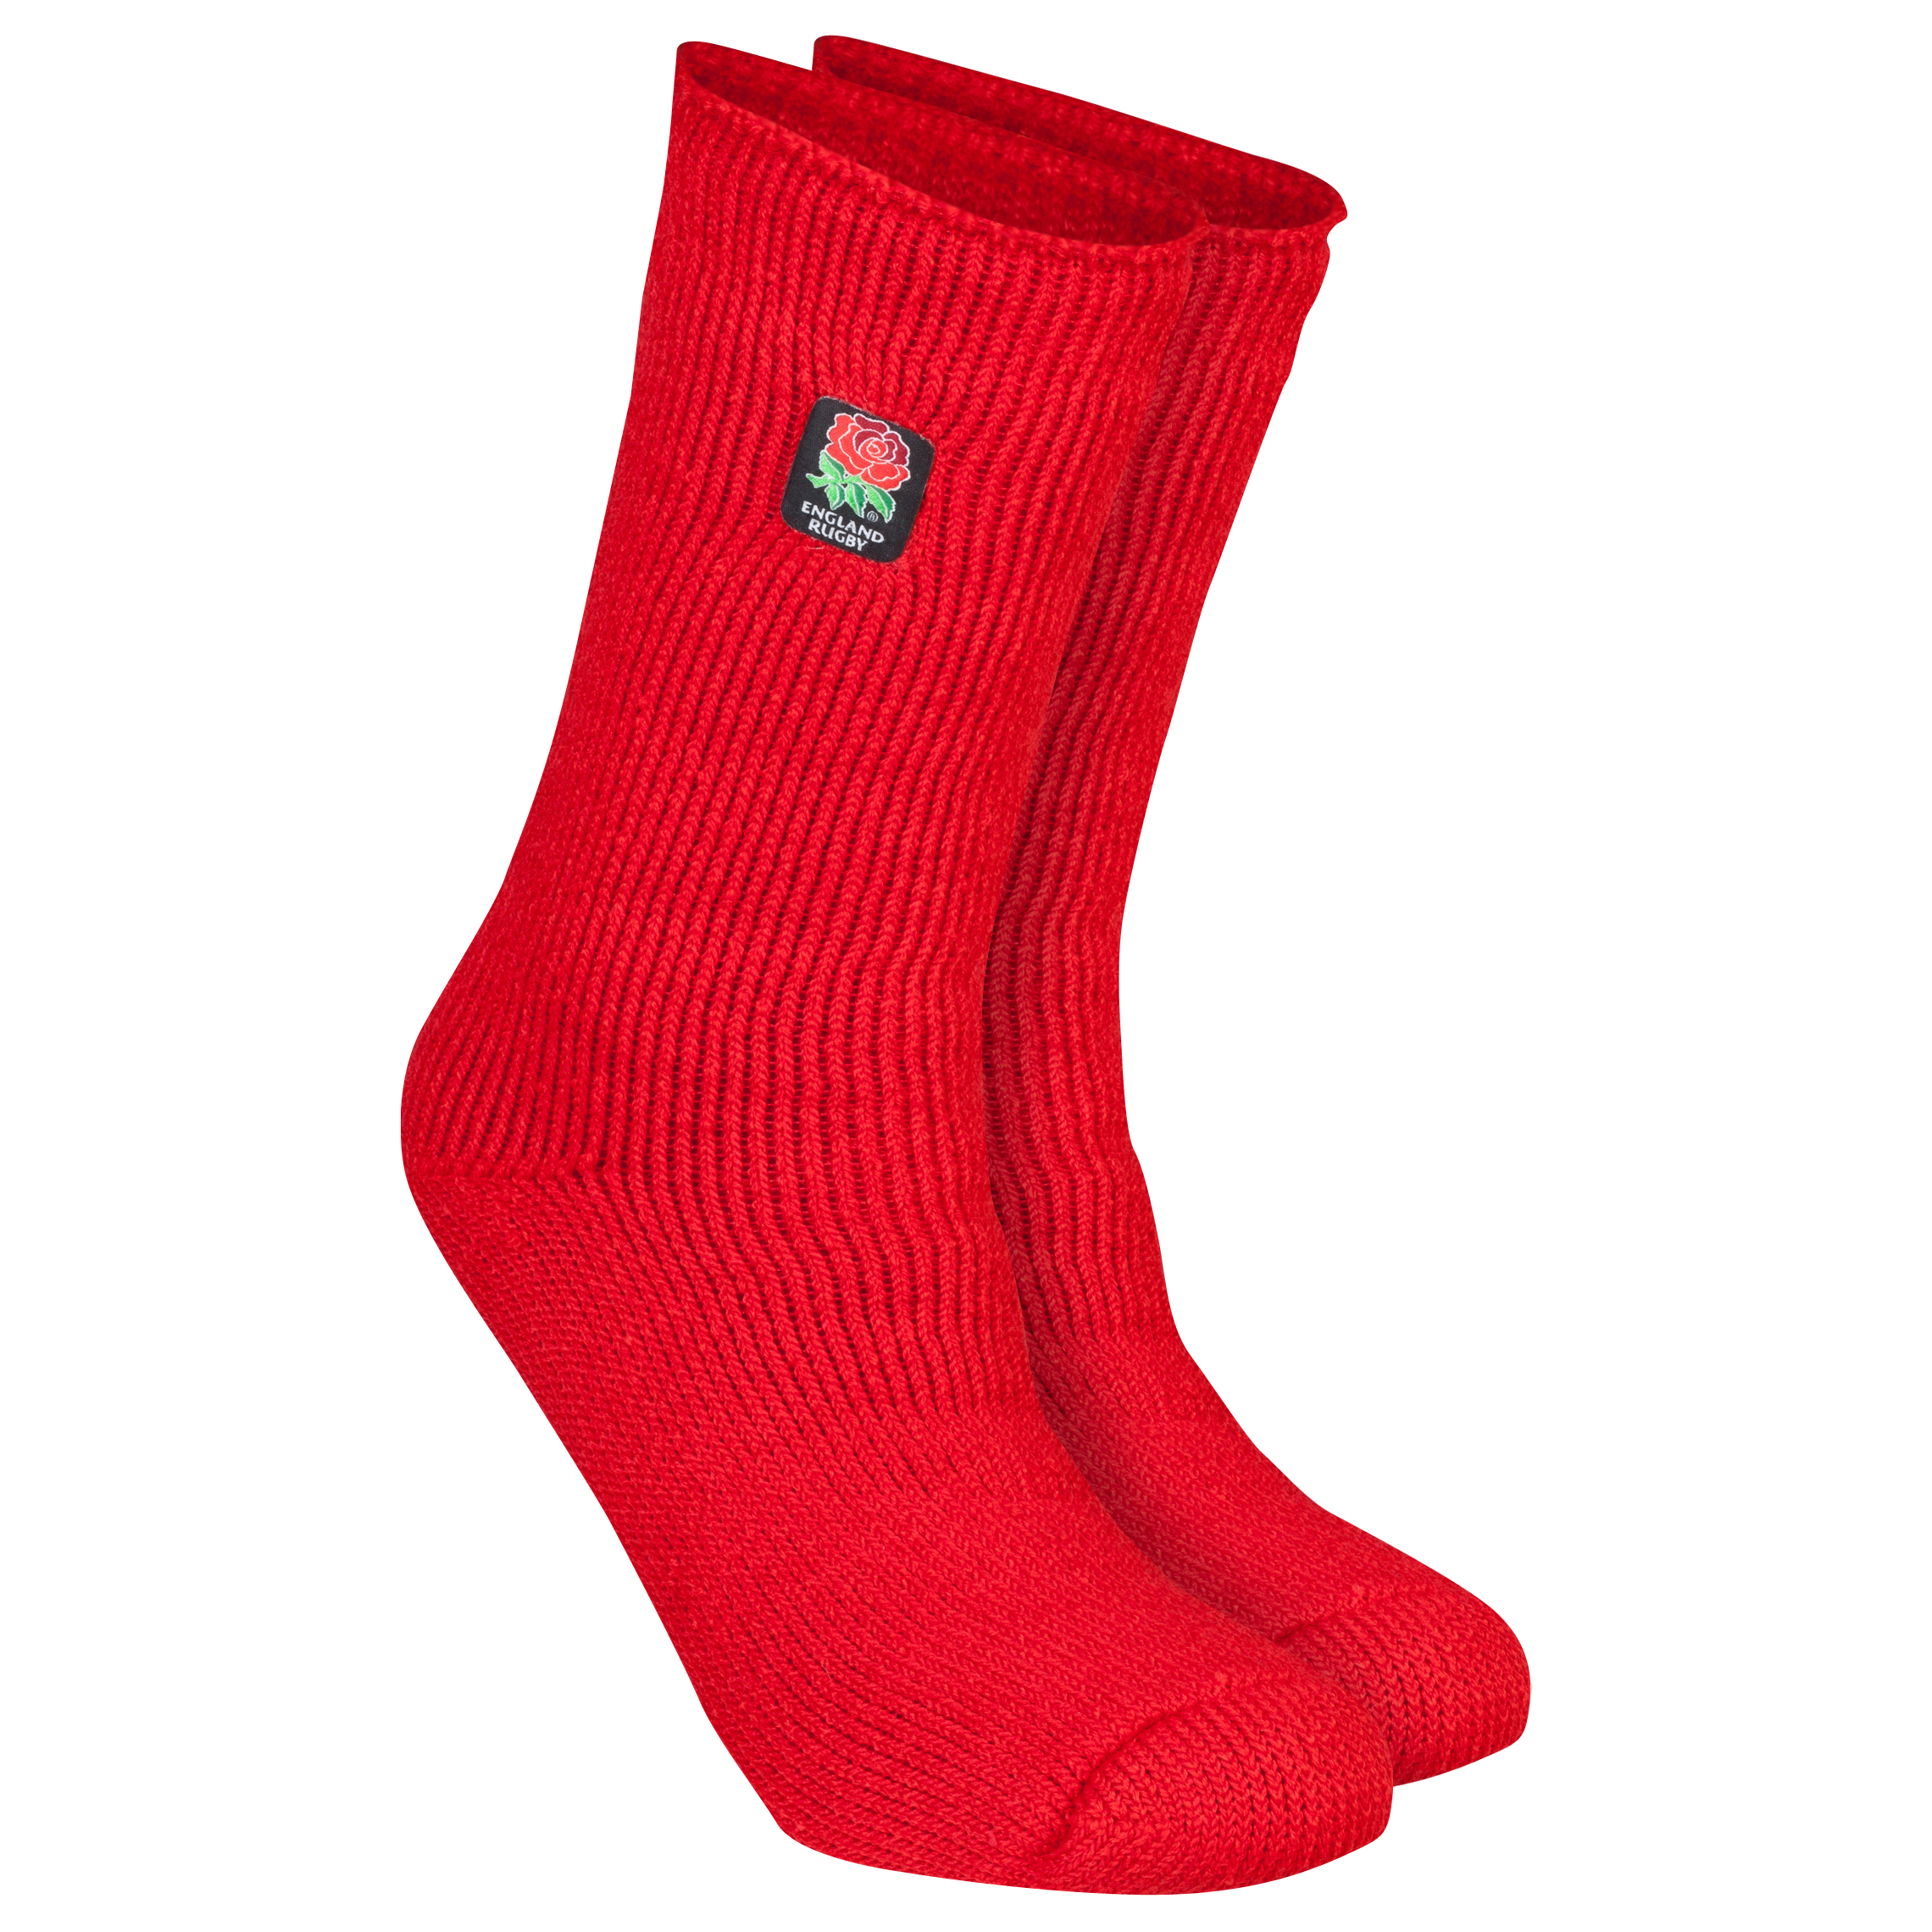 England Rugby Heat Holders Thermal Socks - Red